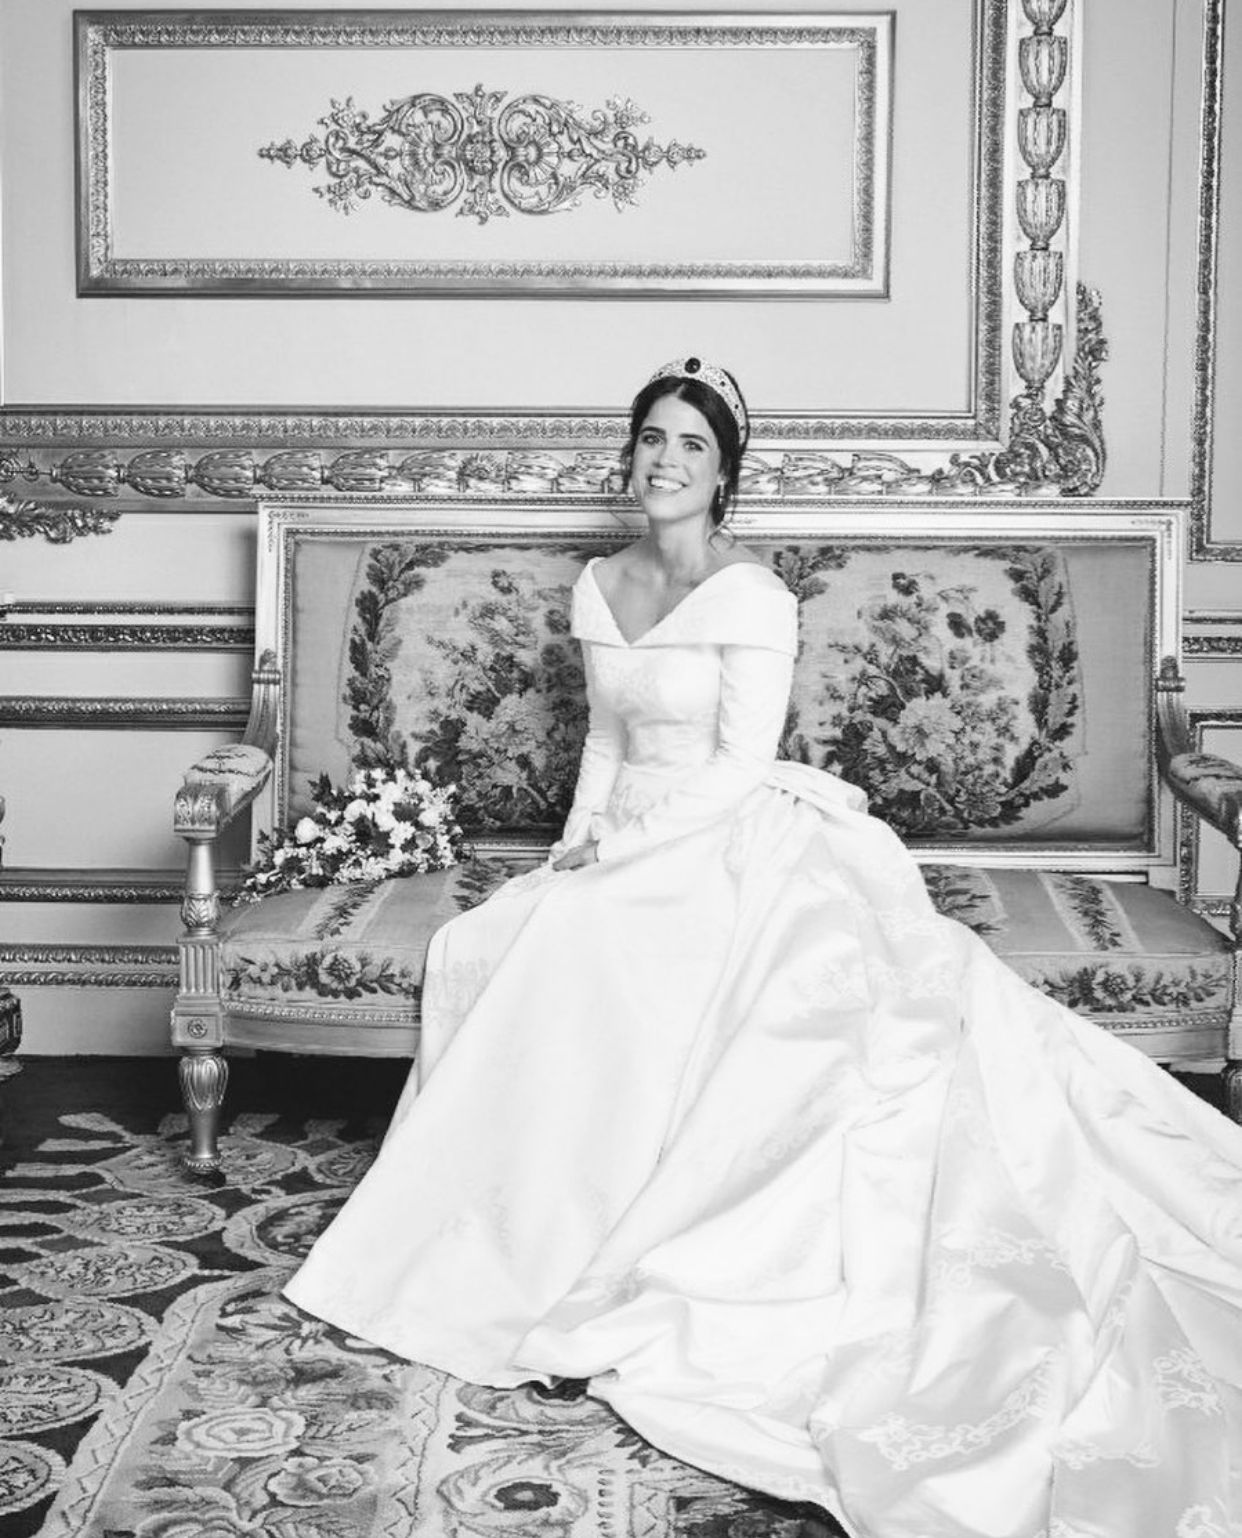 Pin By Cathy Hughes On Love And Marriage Royal Wedding Gowns Princess Beatrice Wedding Royal Wedding Dress [ 1538 x 1242 Pixel ]